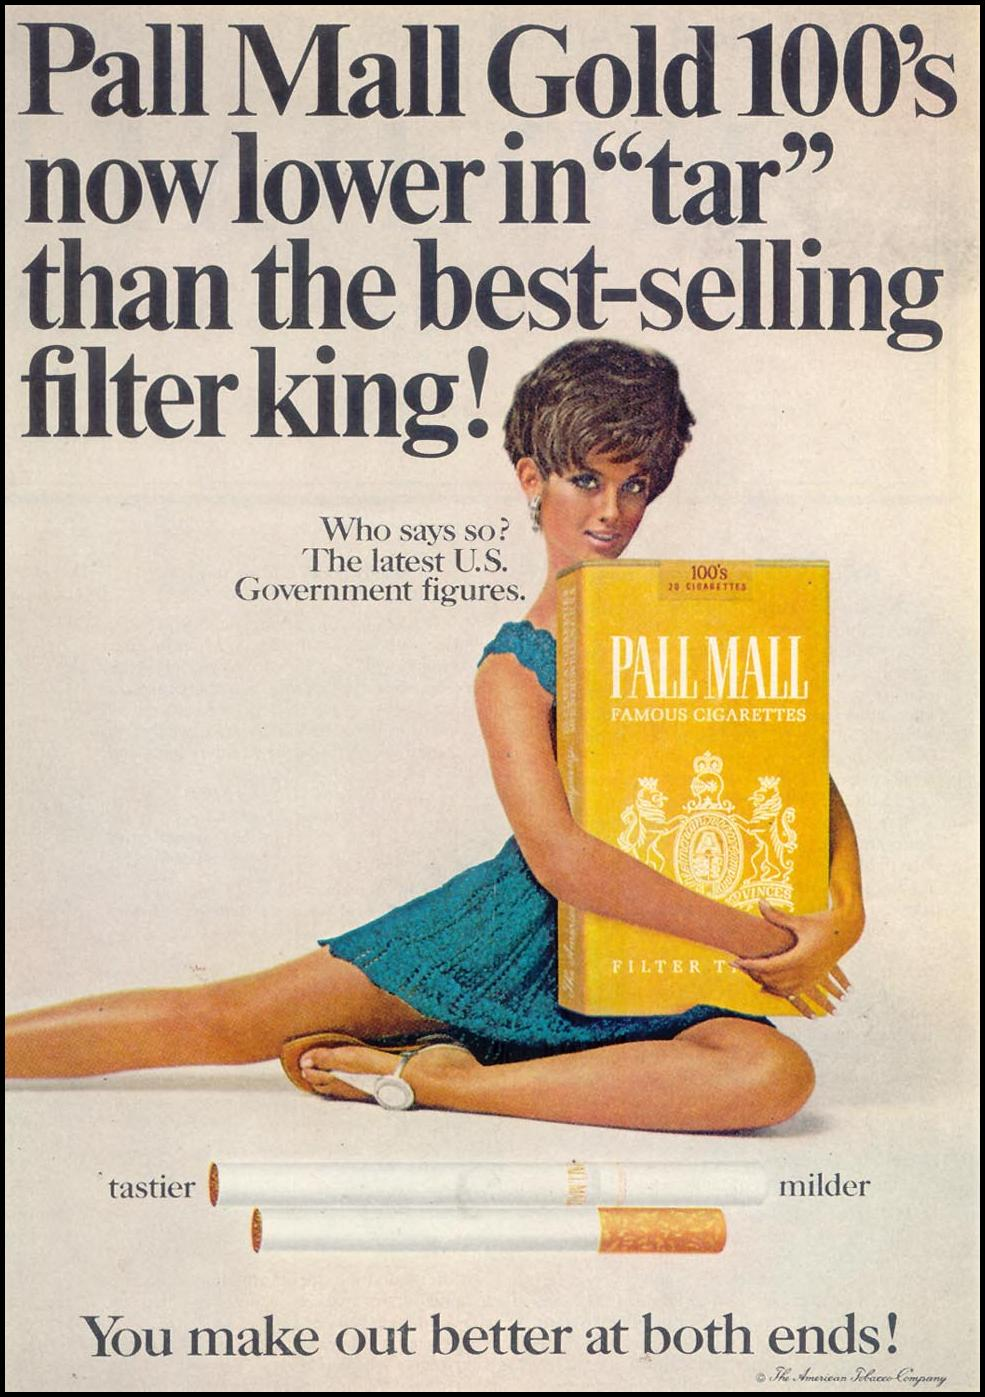 PALL MALL CIGARETTES SATURDAY EVENING POST 01/25/1969 p. 17